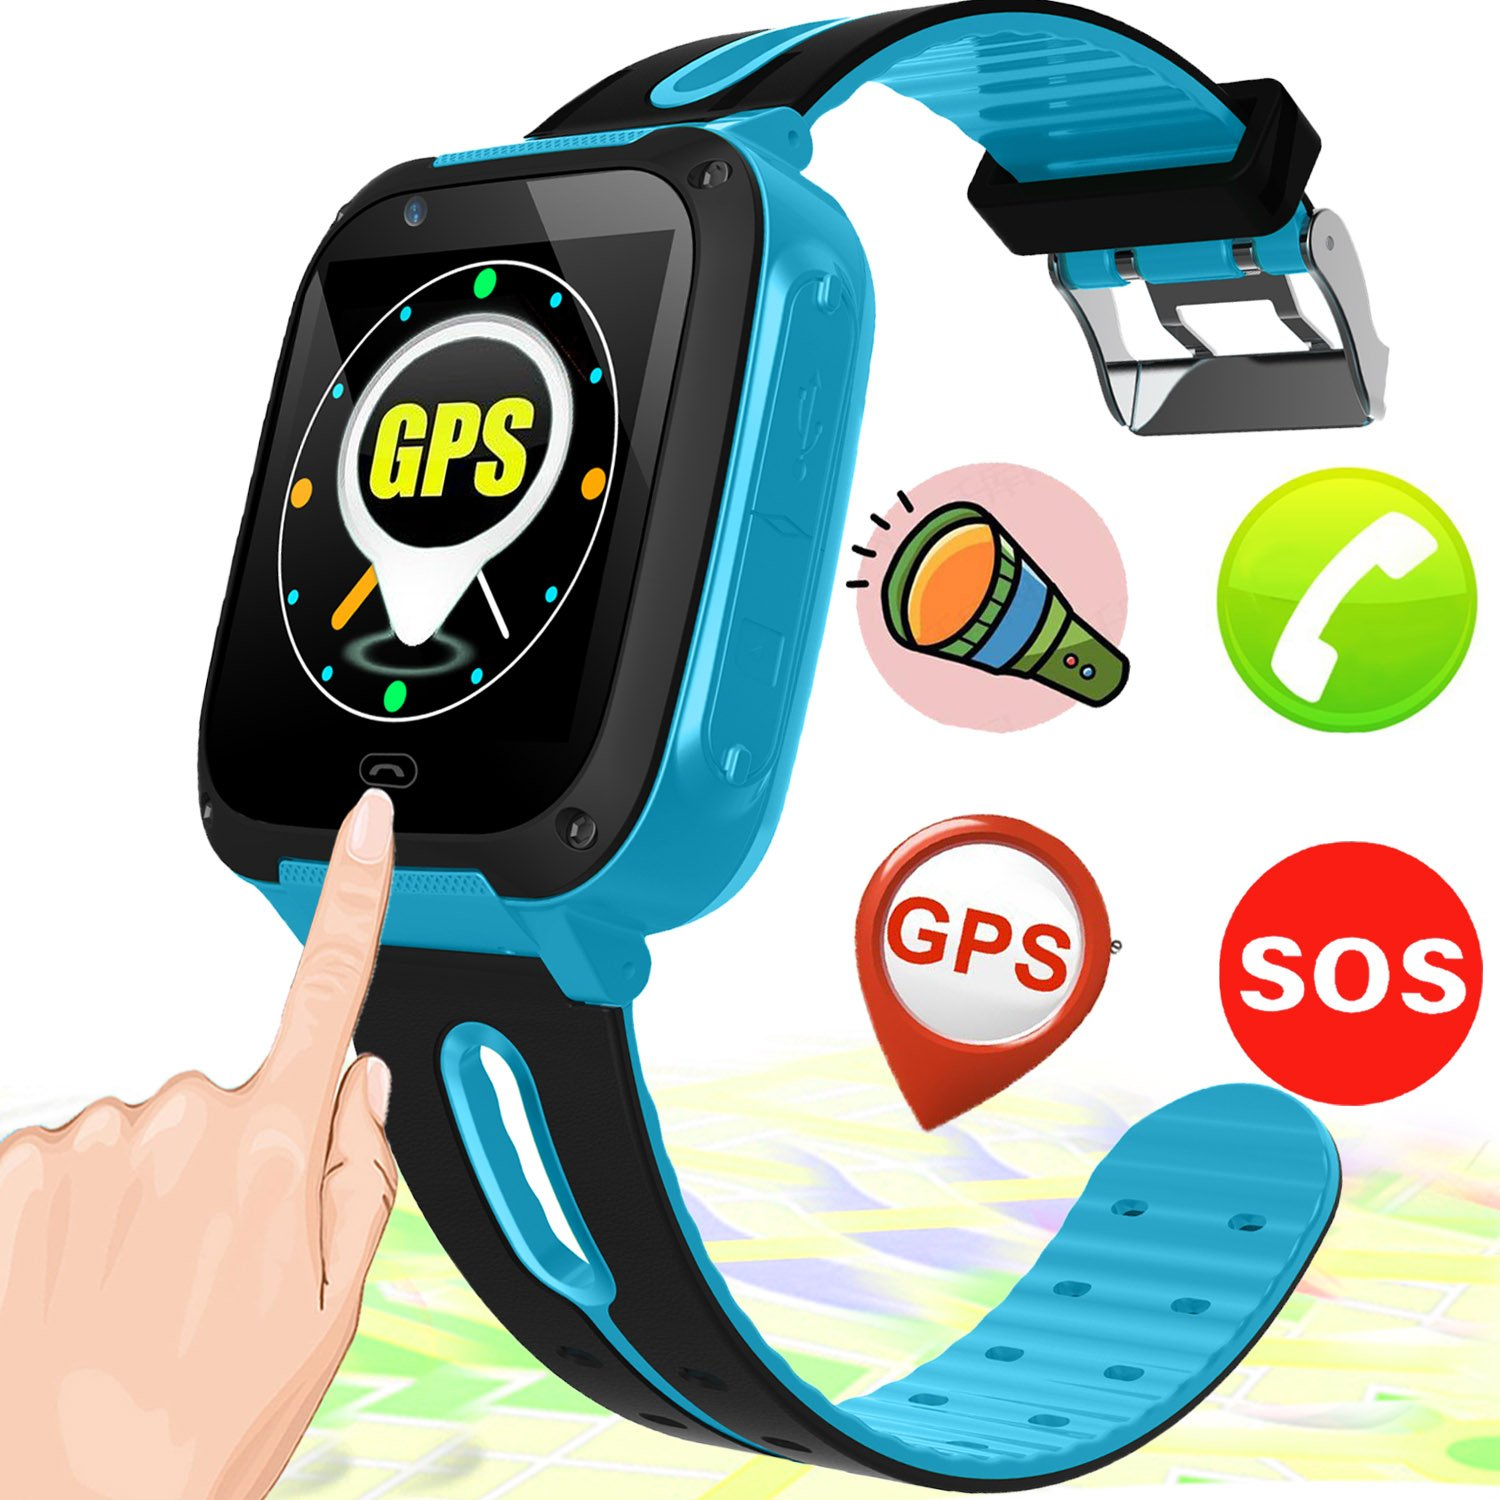 Kids Smart Watch Smart Wrist Watch Phone for 3-12 Year Old with GPS Tracker SOS Camera Sim Card Slot Game Touch Screen Smartwatch Educational Toys Back to School for Boys Girls